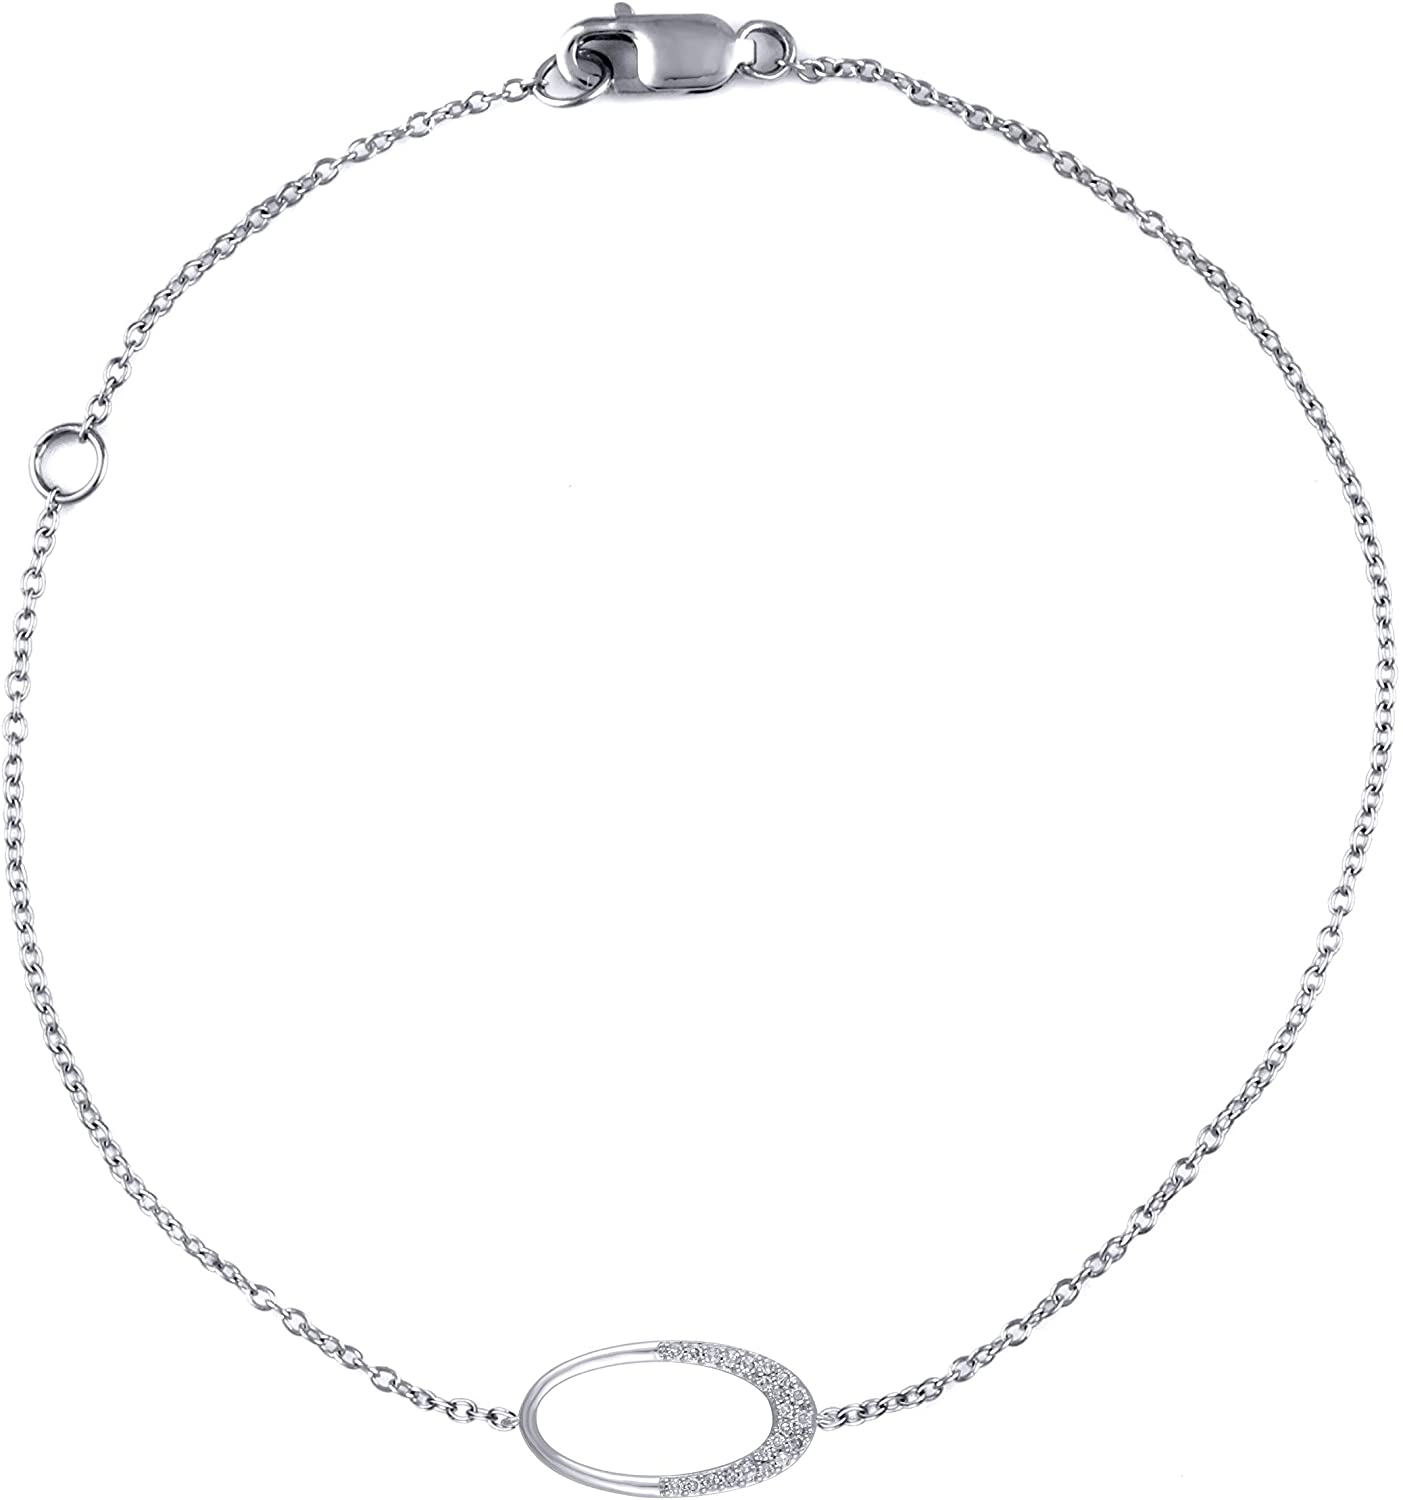 14K White Gold 1/10 Carat (G-H Color, SI2-I1 Clarity) Natural Diamond Bracelet with Accented Oval for Women